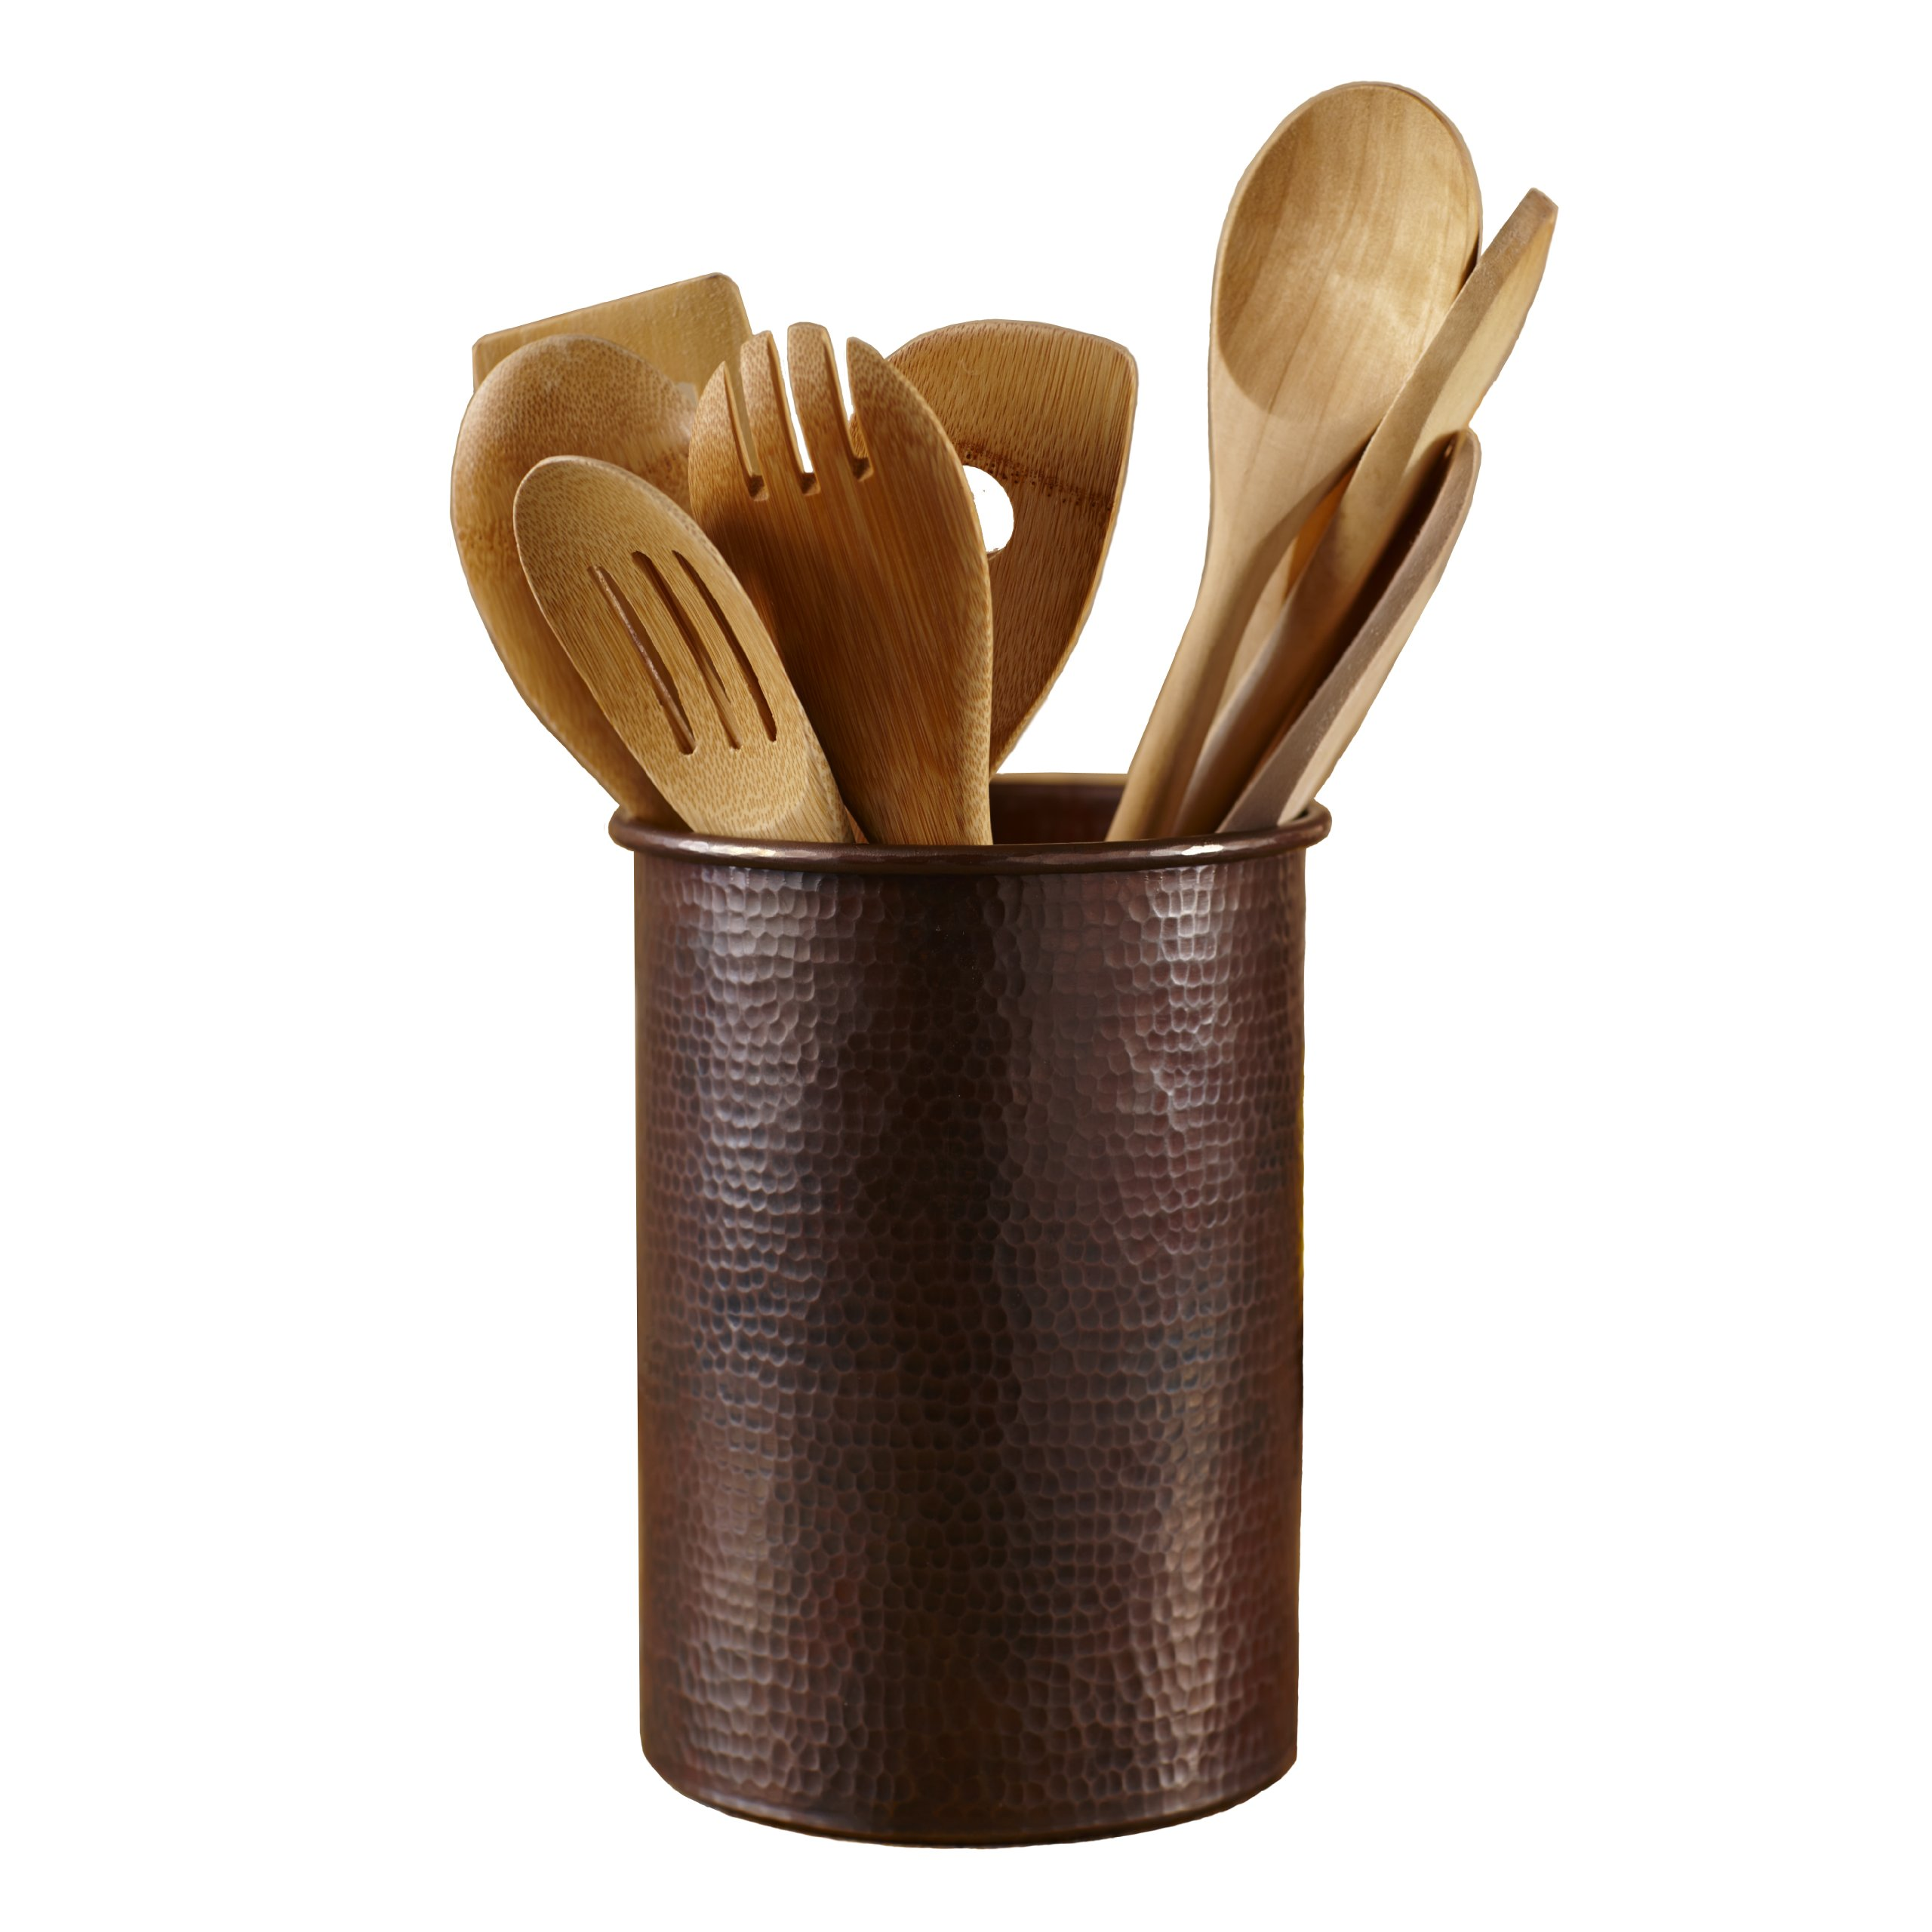 Native Trails Copper Spatula/Utensil Holder, 7 Inch by 6 Inch by Native Trails